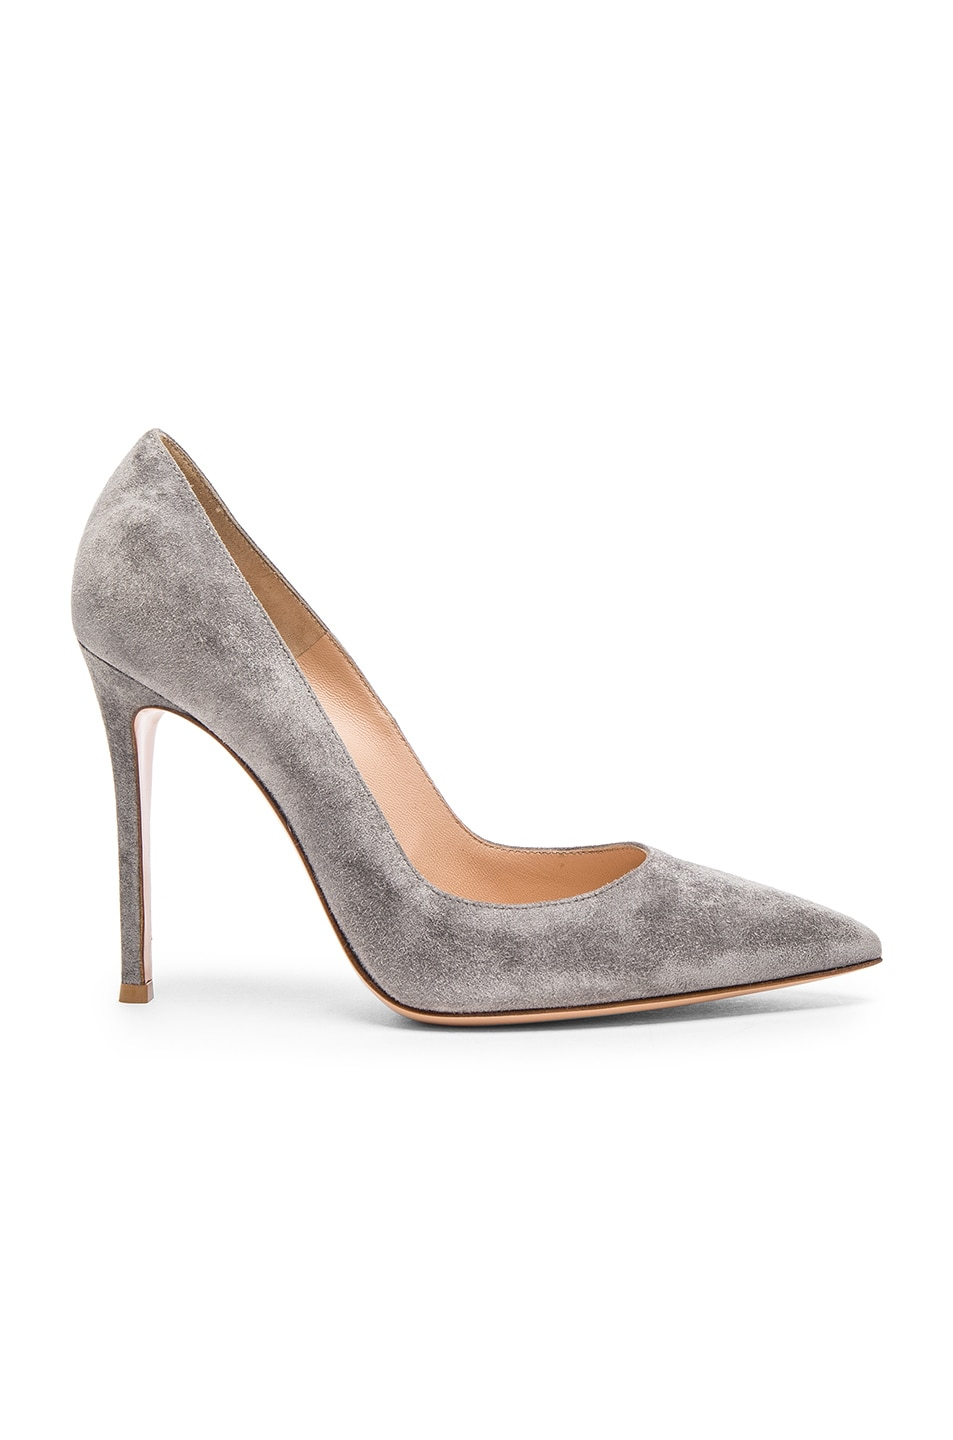 Image 1 of Gianvito Rossi Suede Gianvito Pumps in Fumo